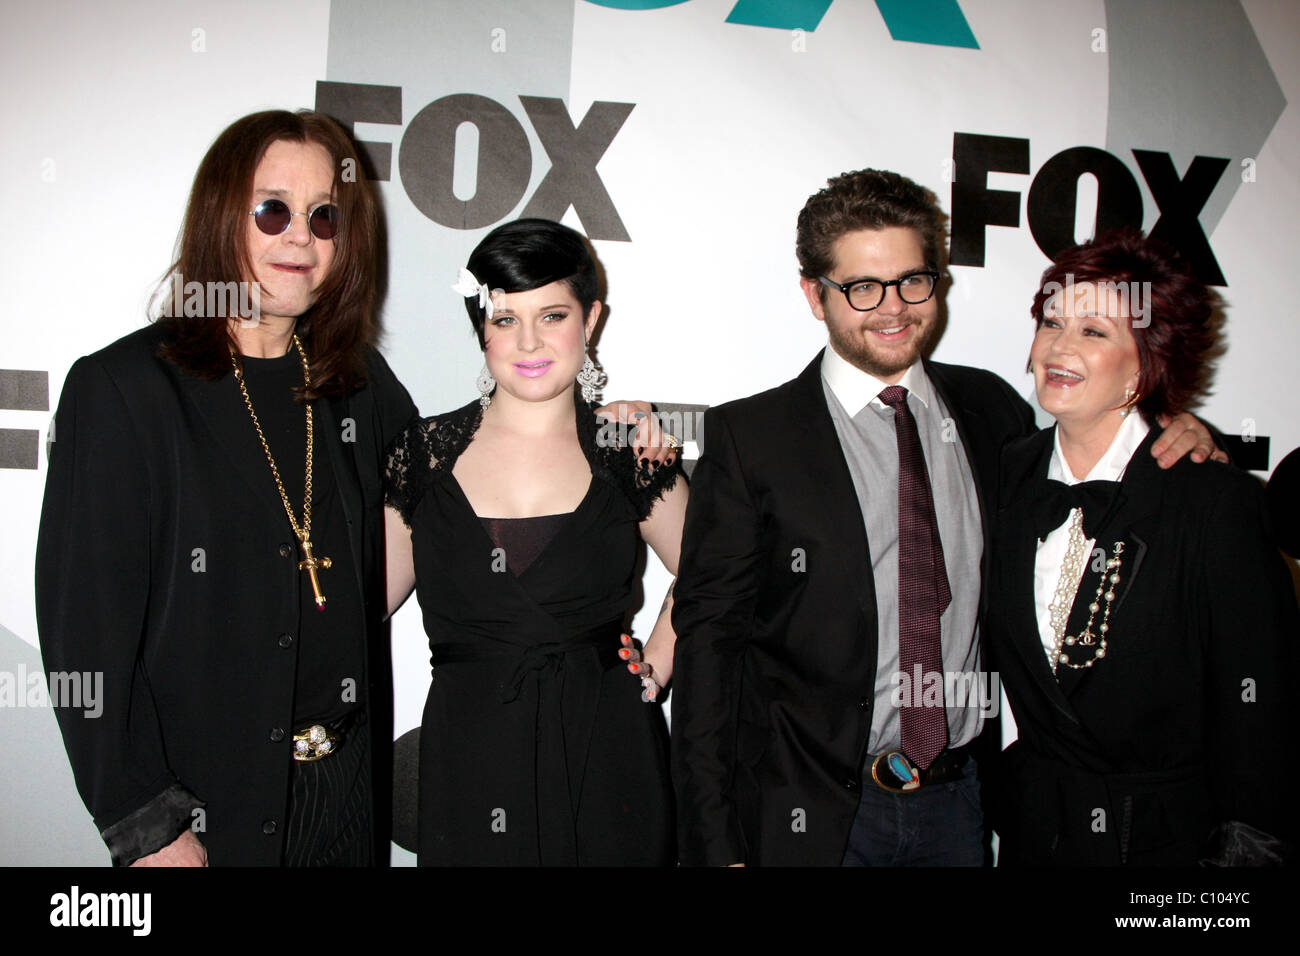 Ozzy Osbourne, Kelly Osbourne, Jack Osbourne y Sharon Osbourne Fox TV Invierno All Star Party en MyHouse - Llegadas Imagen De Stock